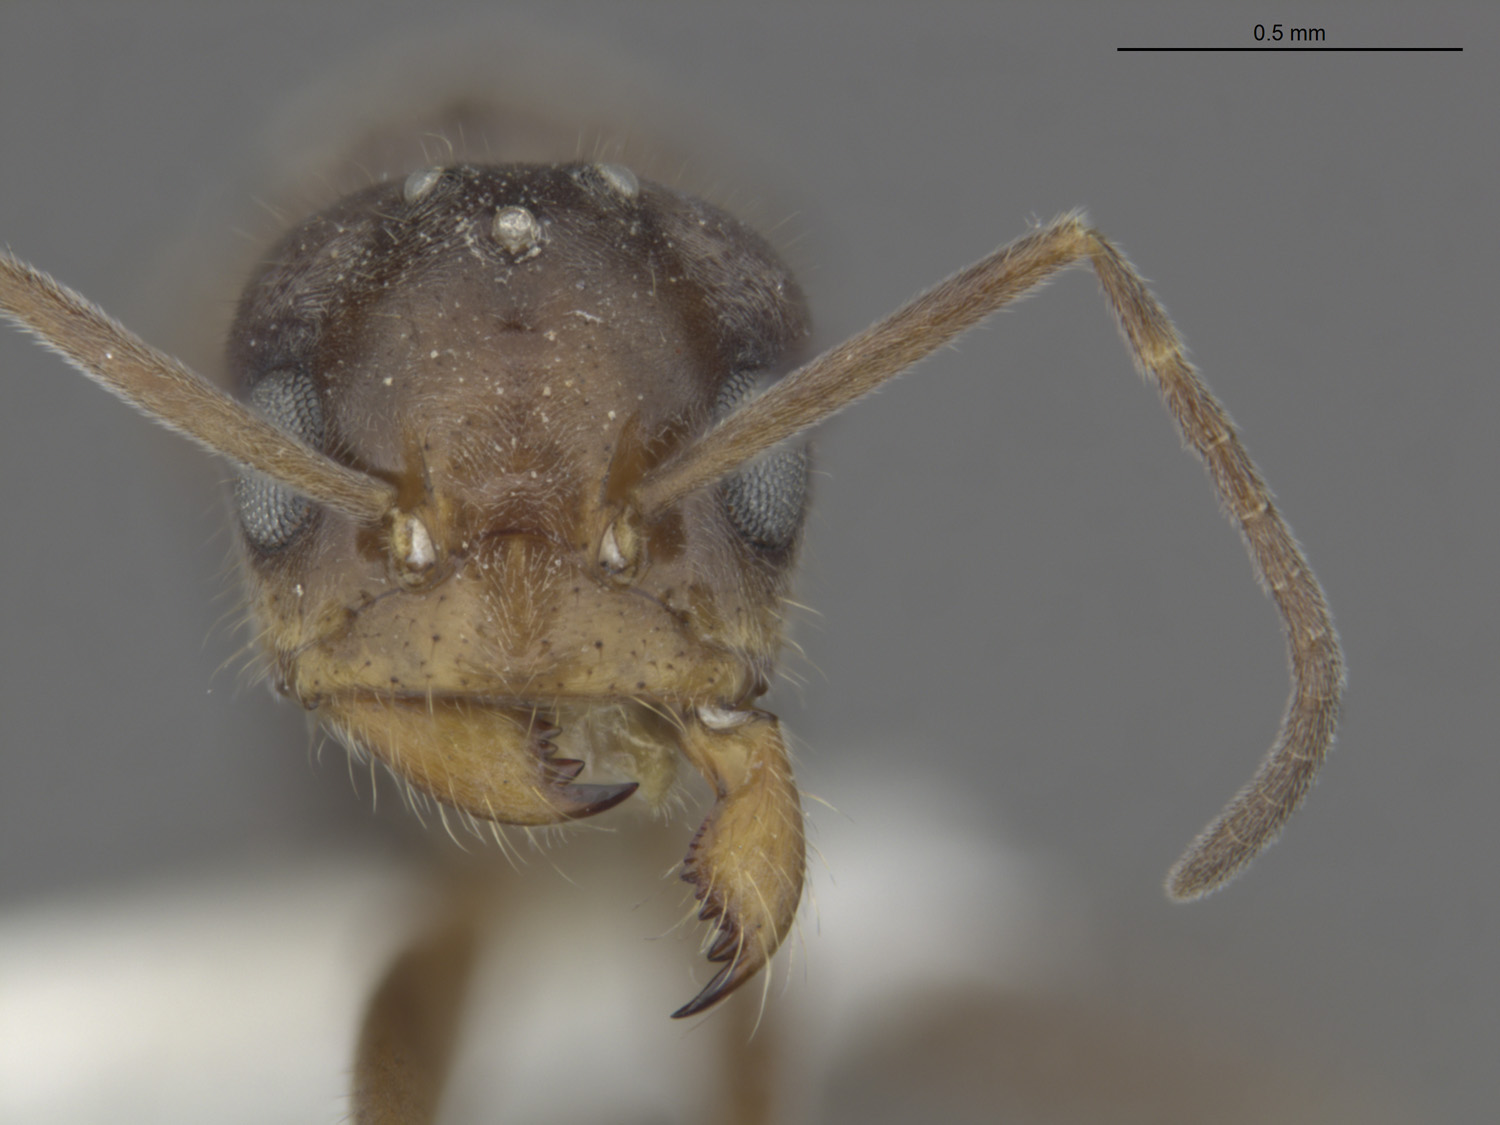 Media of type image, MCZ:Ent:588708 Identified as Dorymyrmex sp.. . Aspect: frontal